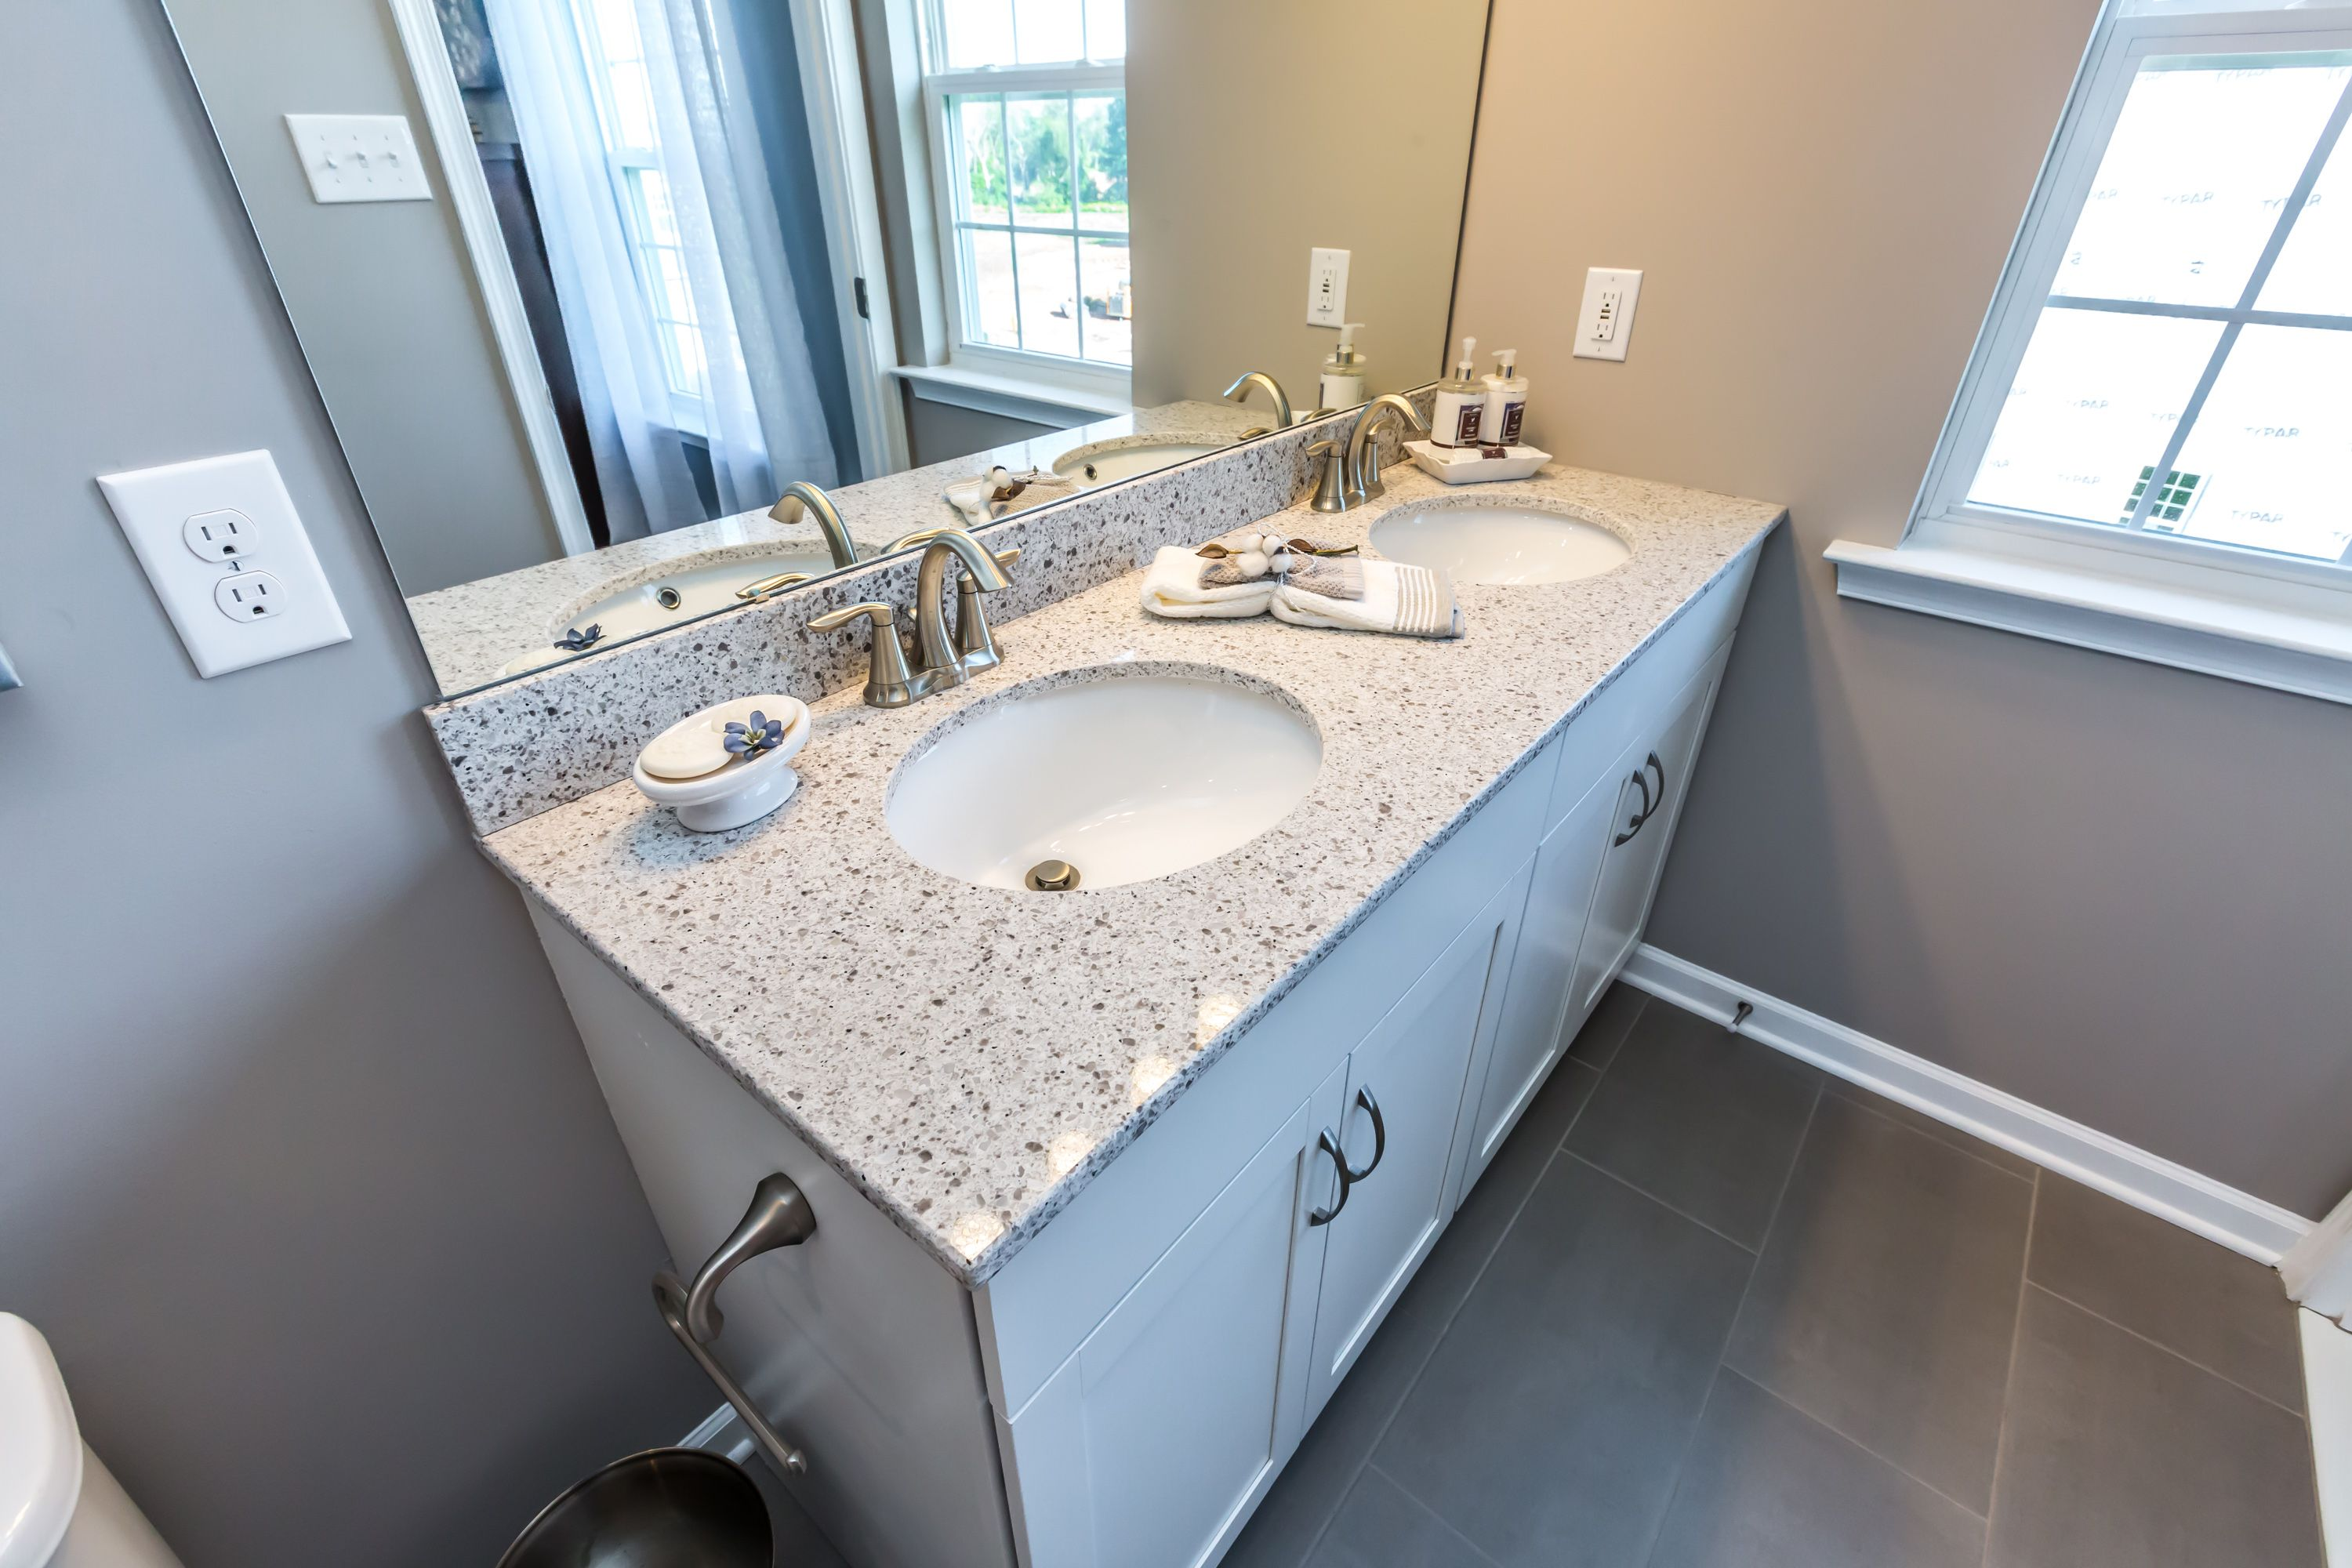 Bathroom featured in the Newport By Rouse Chamberlin Homes in Philadelphia, PA